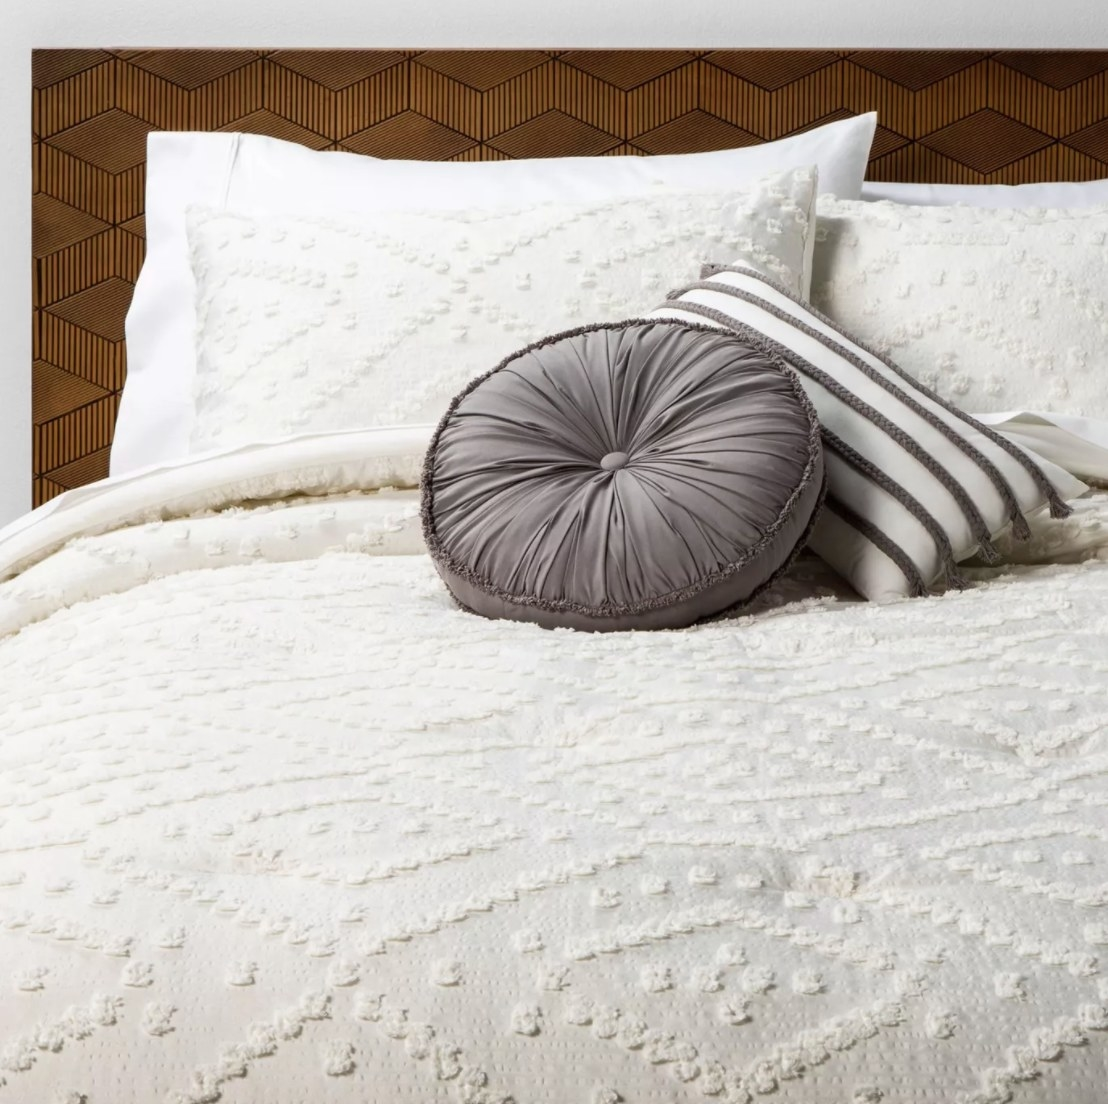 The tufted chenille comforter